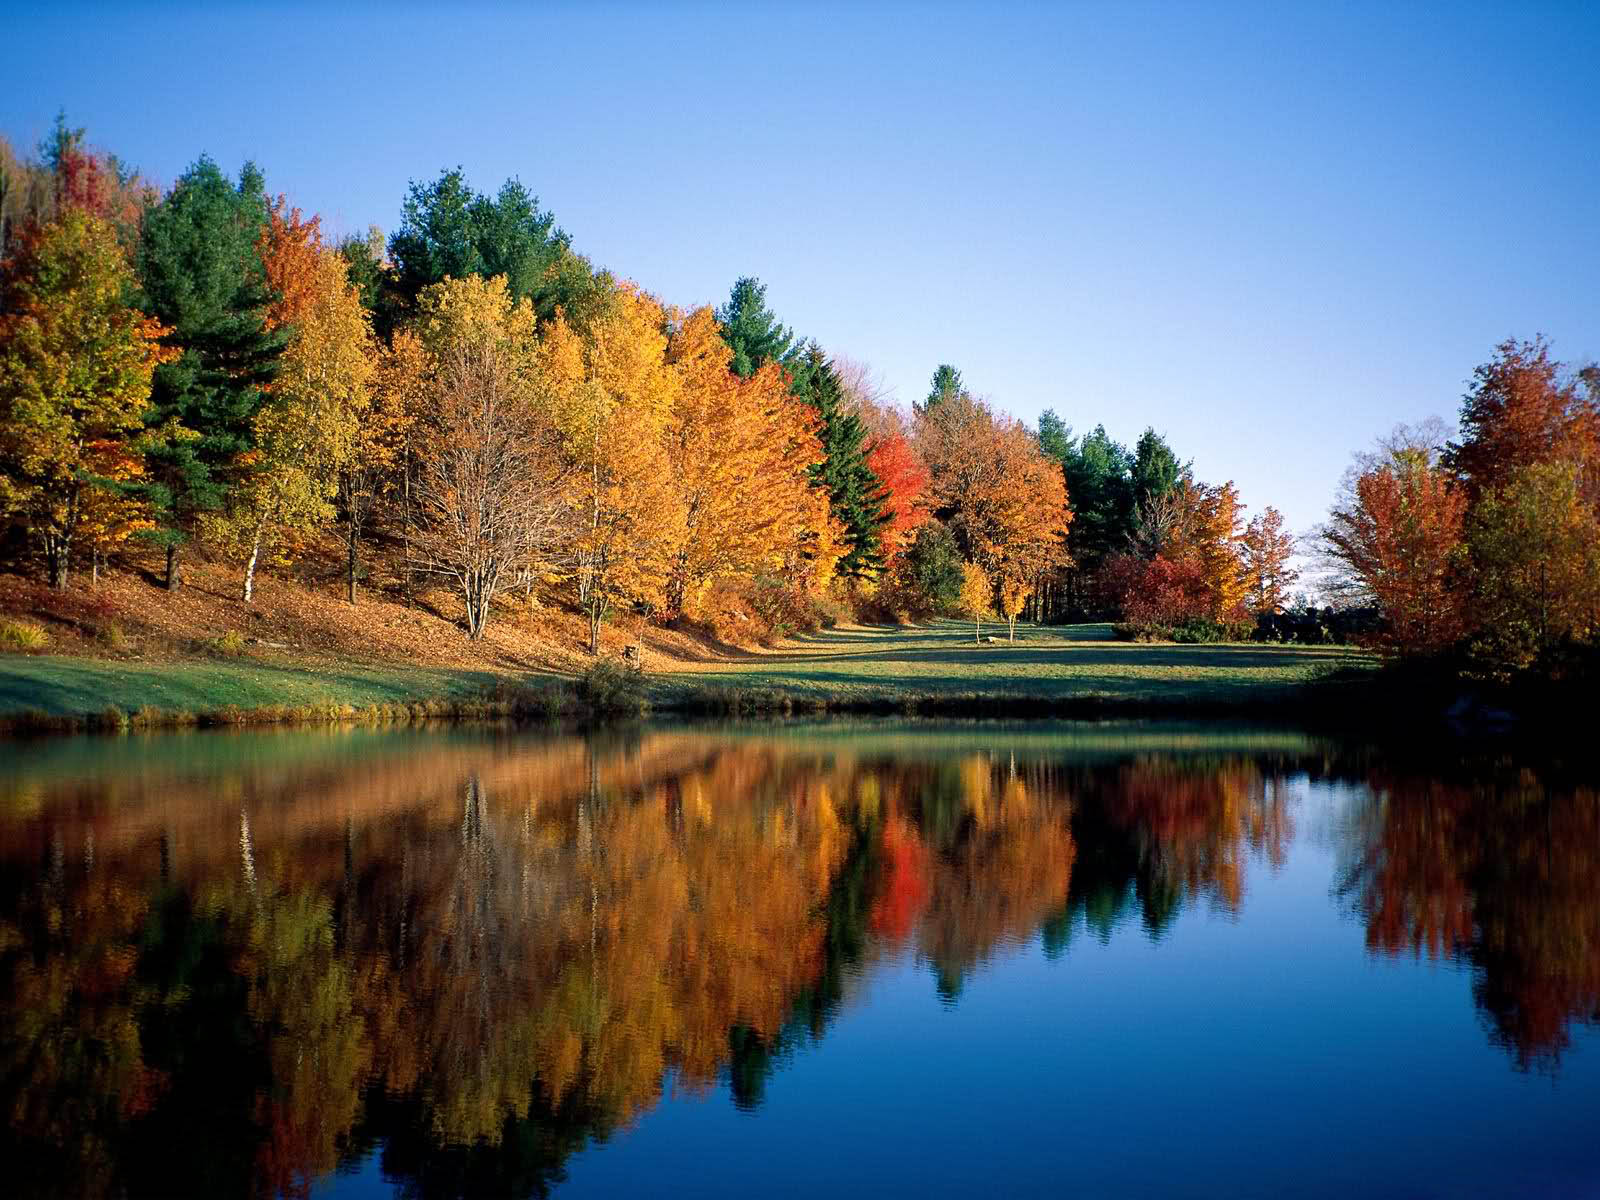 Tag Super Autumn Scenery Wallpapers Backgrounds Paos Images And Pictures For Free